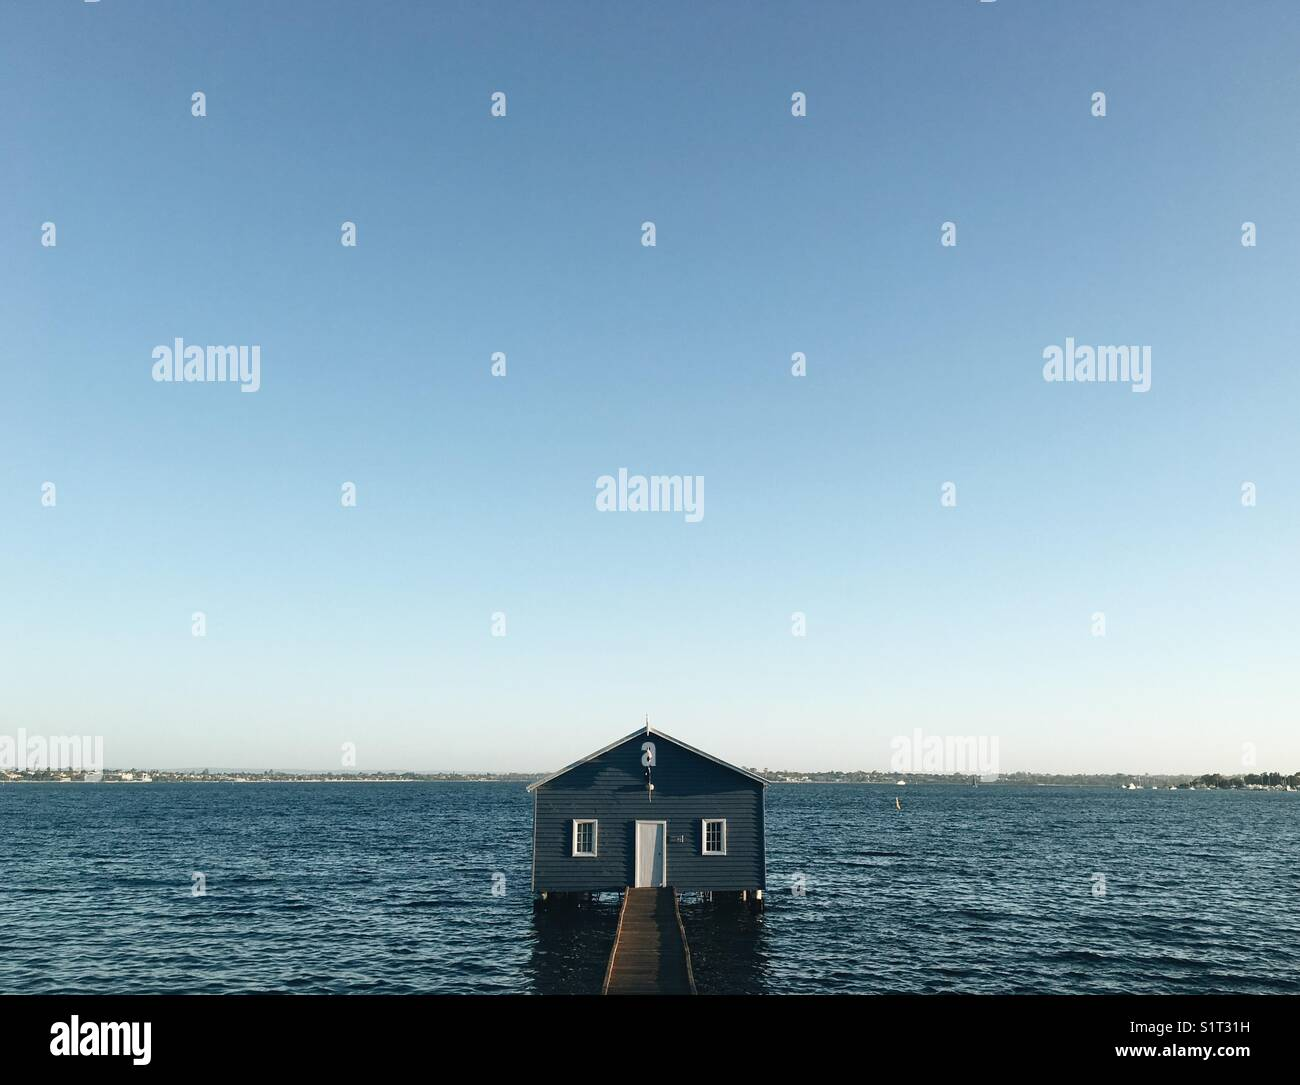 Sunset at Crawley Boatshed - Stock Image